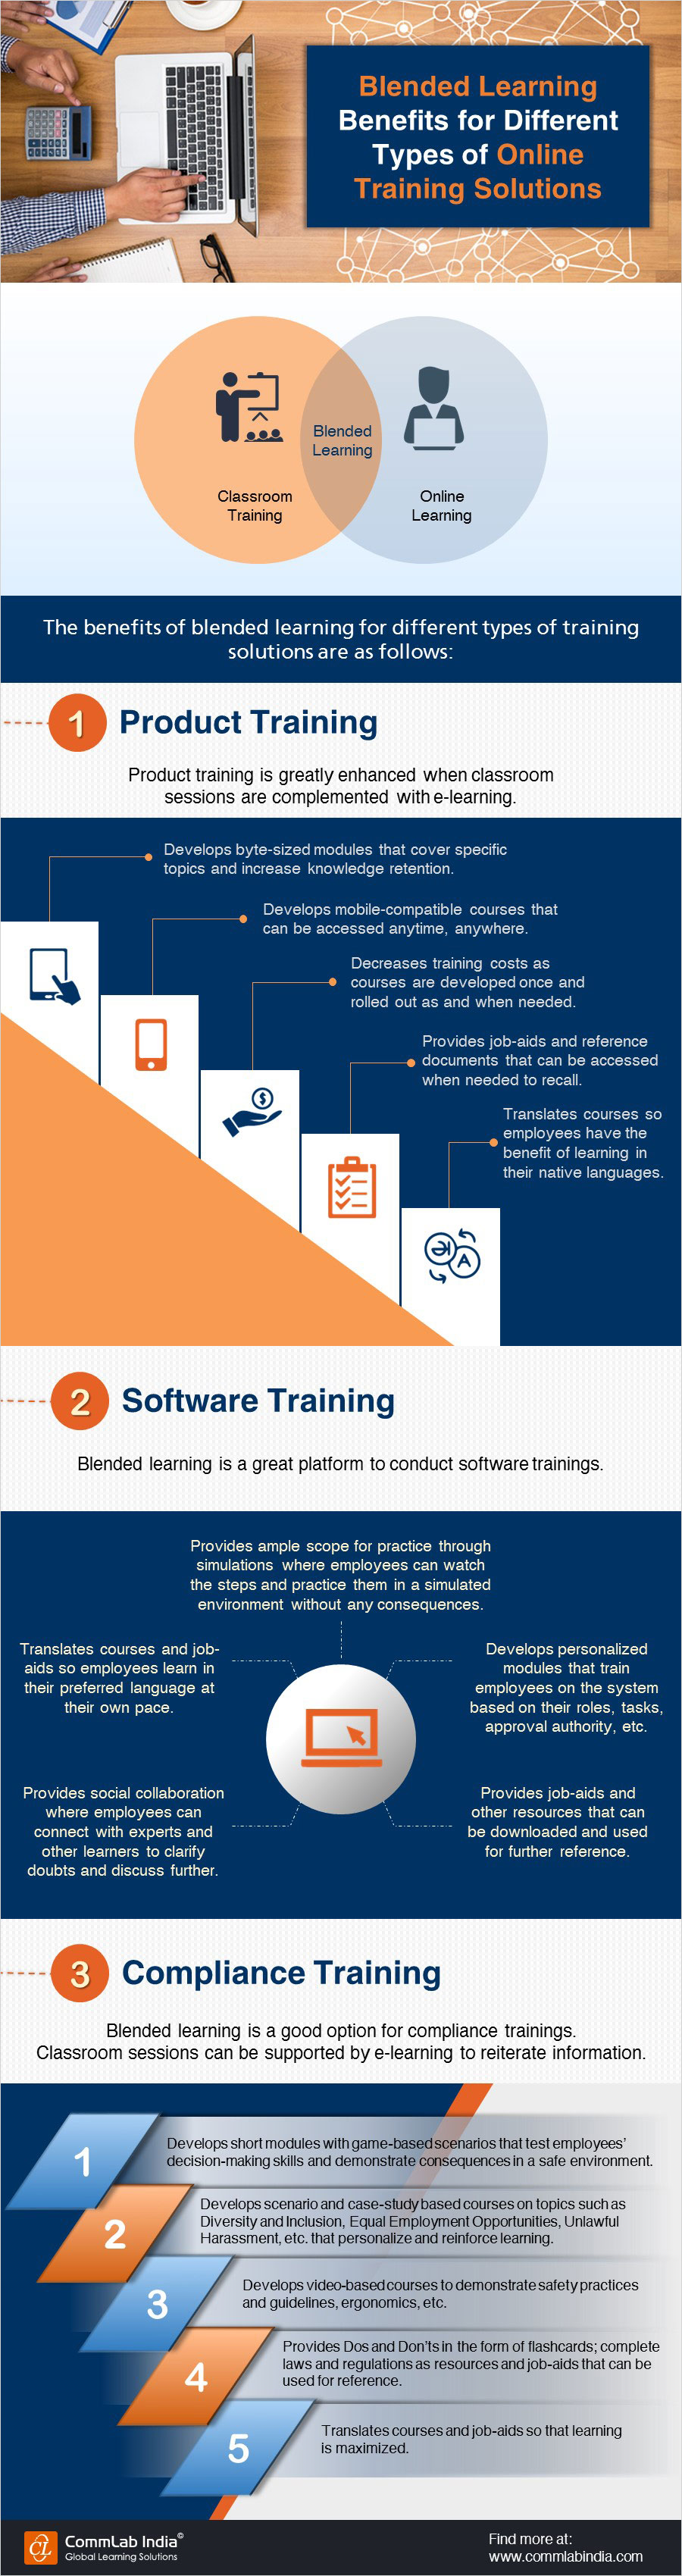 Blended Learning Benefits for Different Types of Online Training Solutions[Infographic]